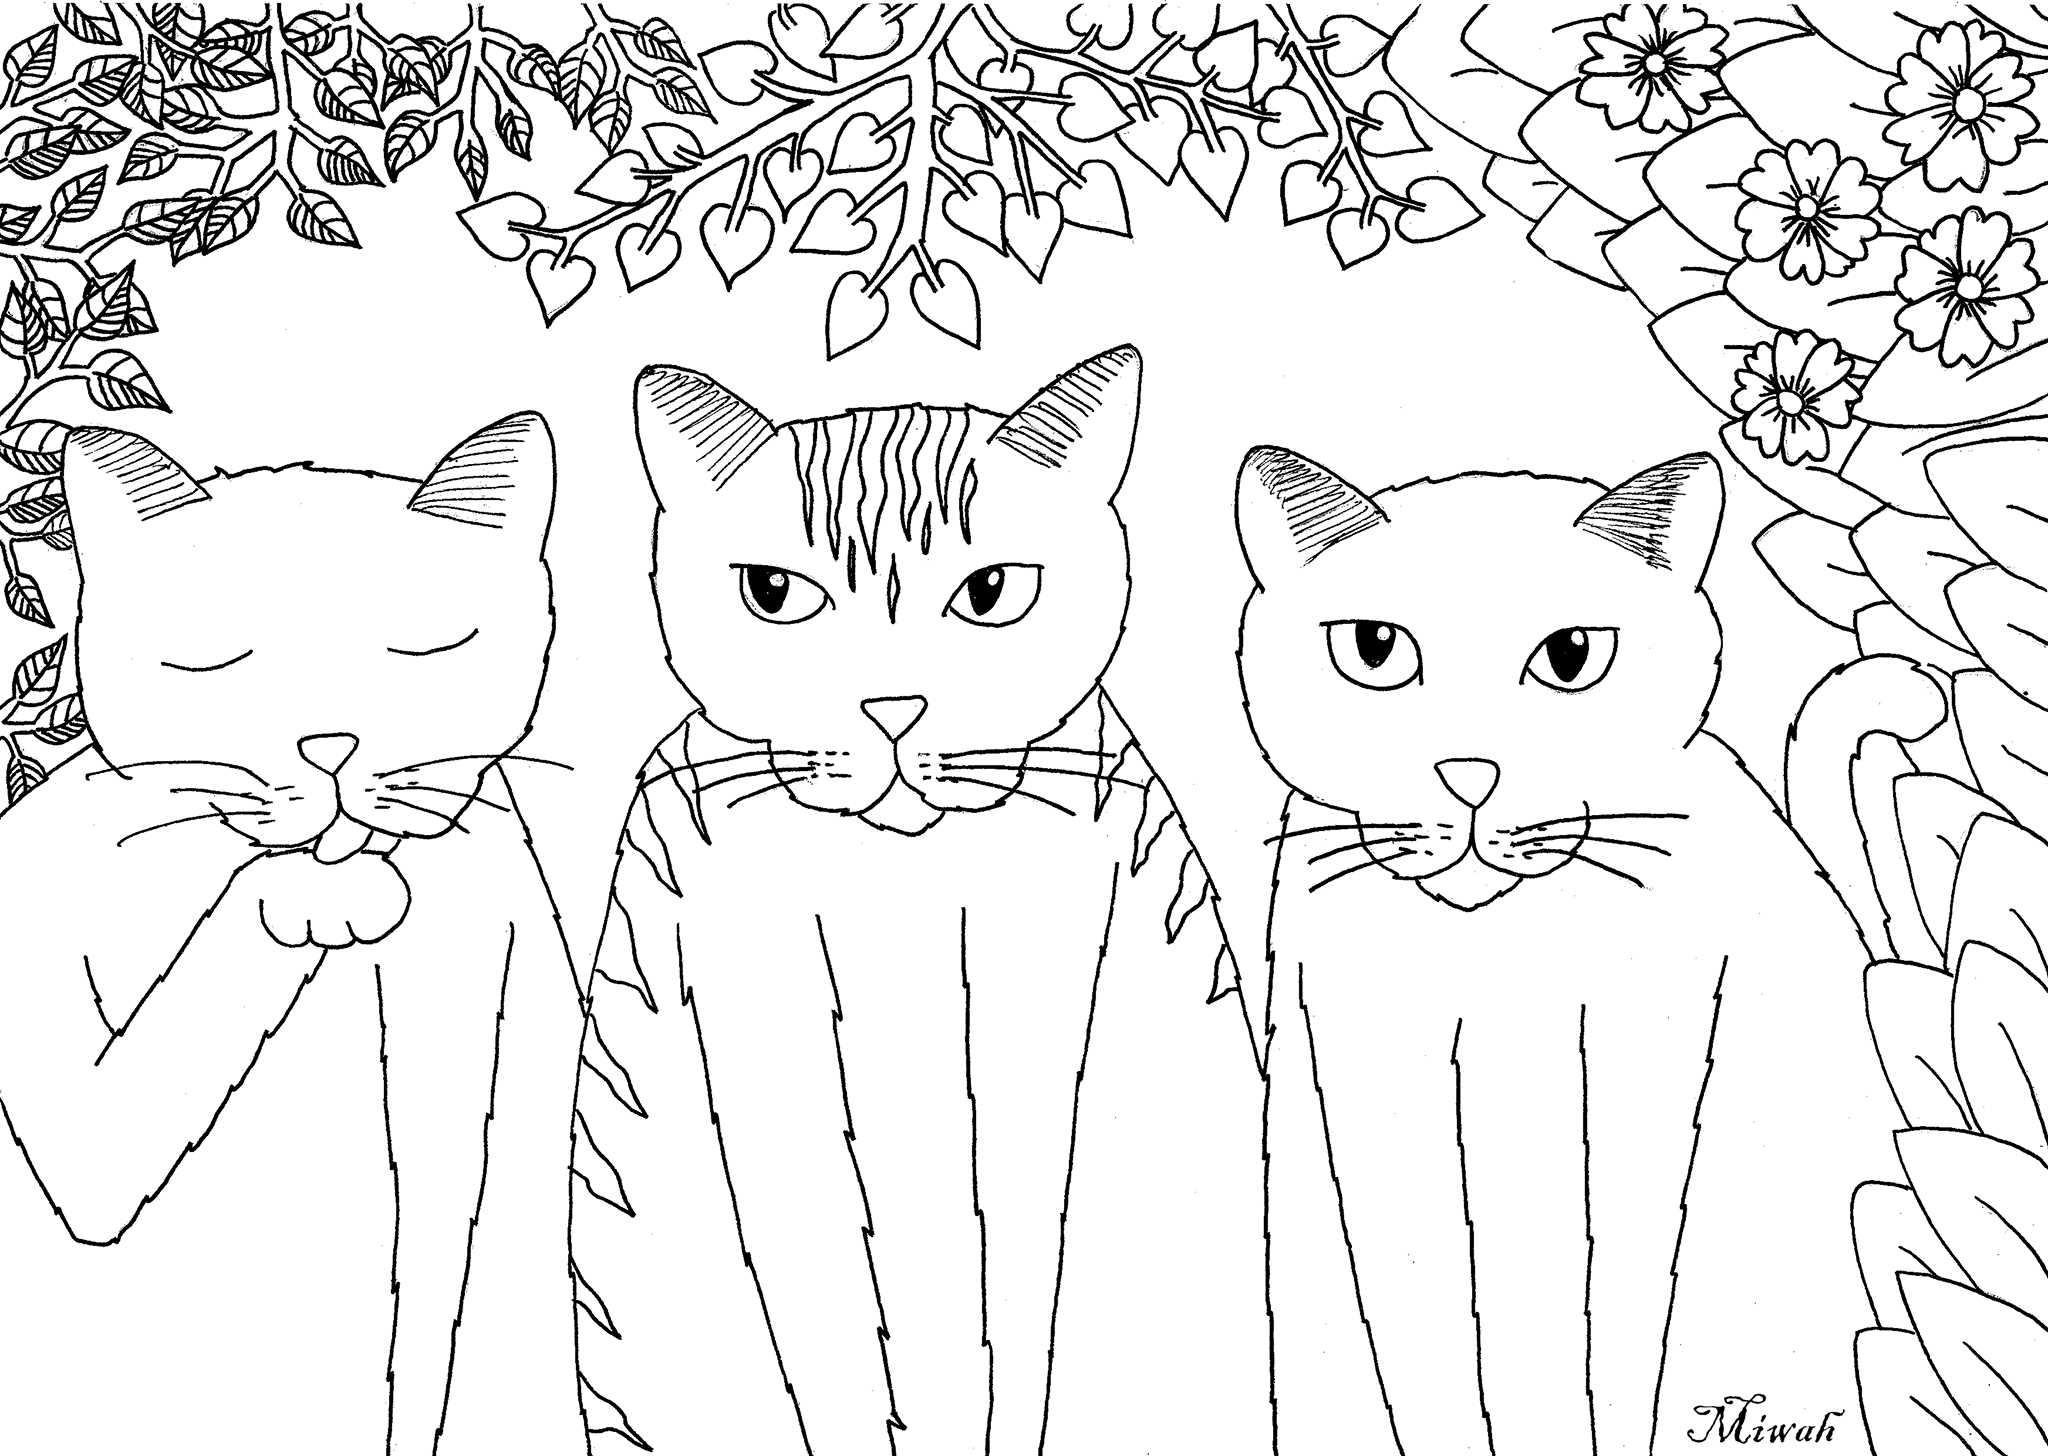 Tree Little Funny Kittens Simple Coloring Page